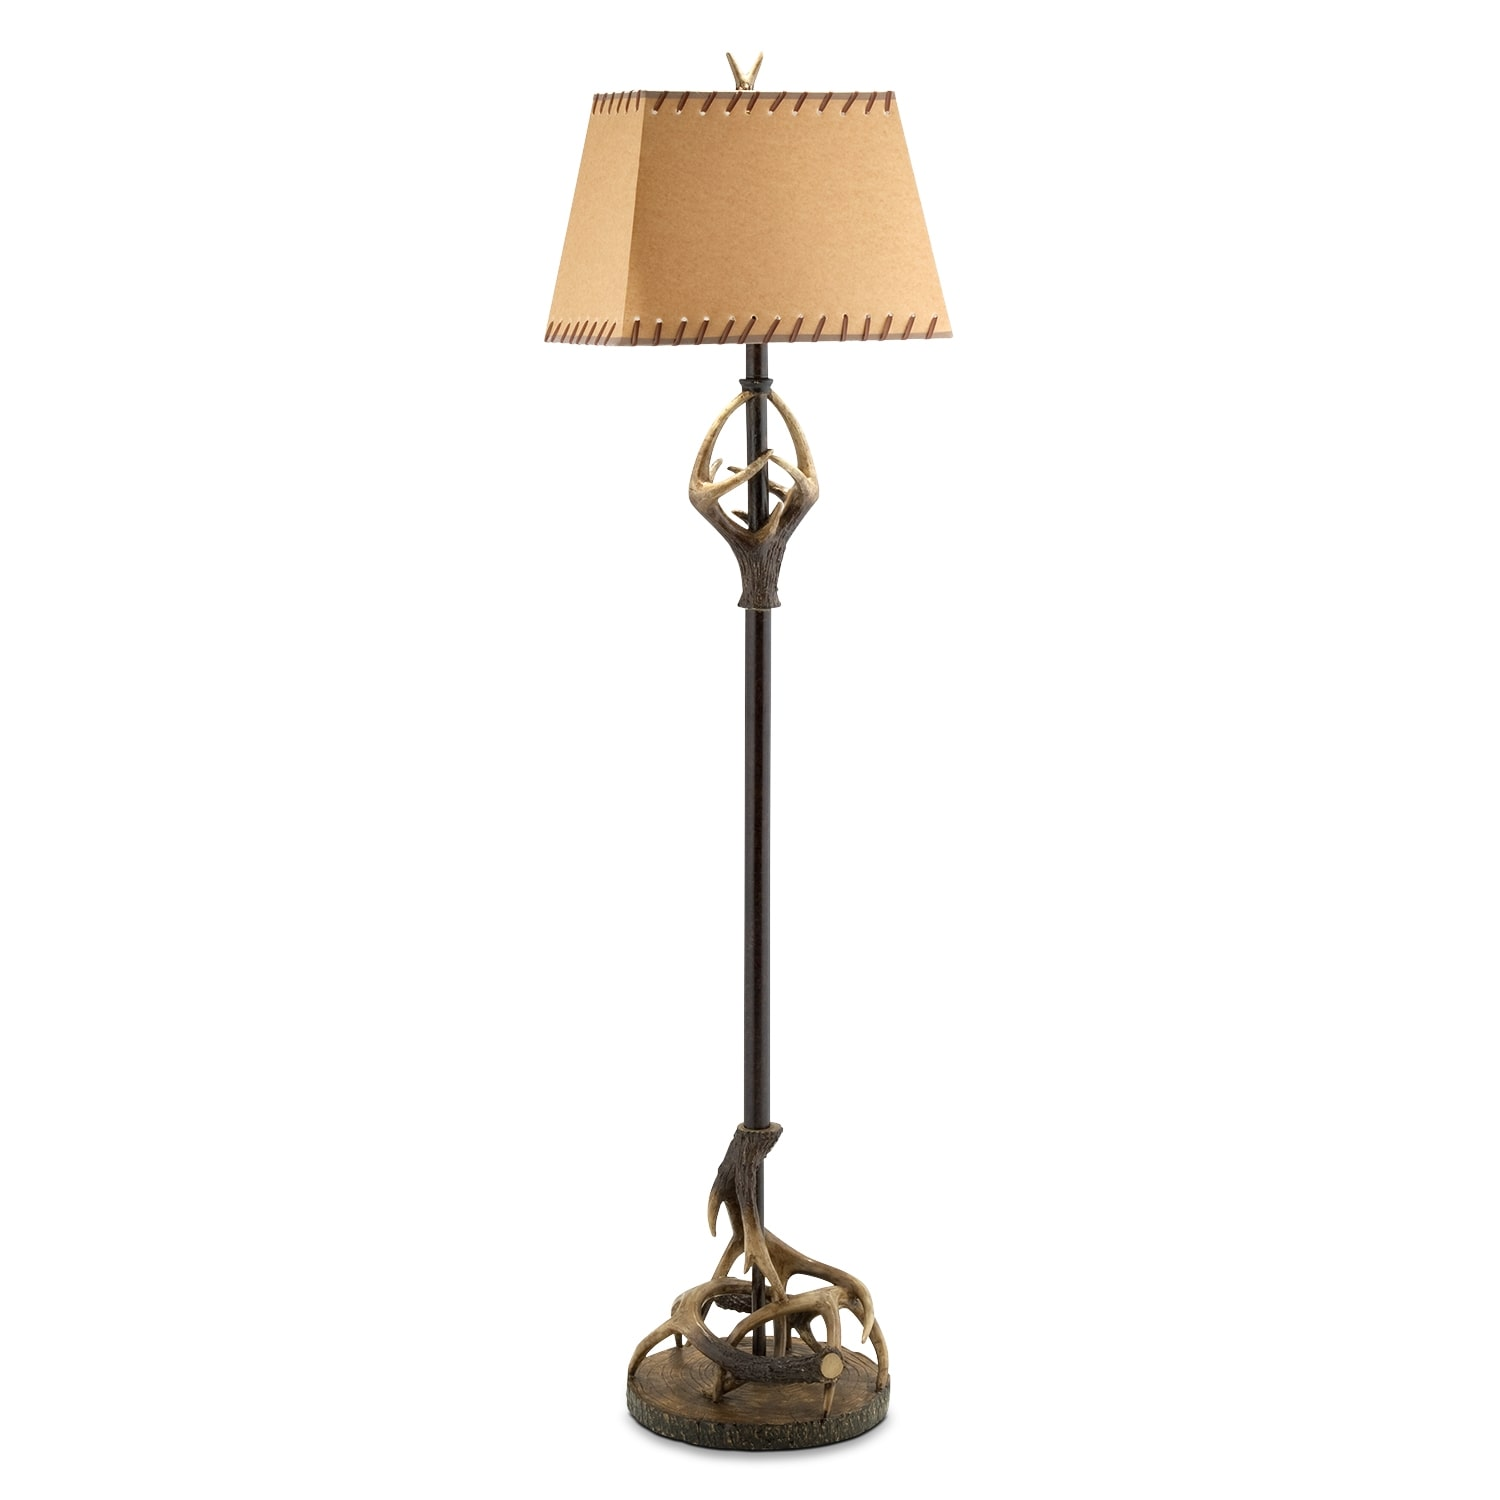 Home Accessories - Antlers Floor Lamp